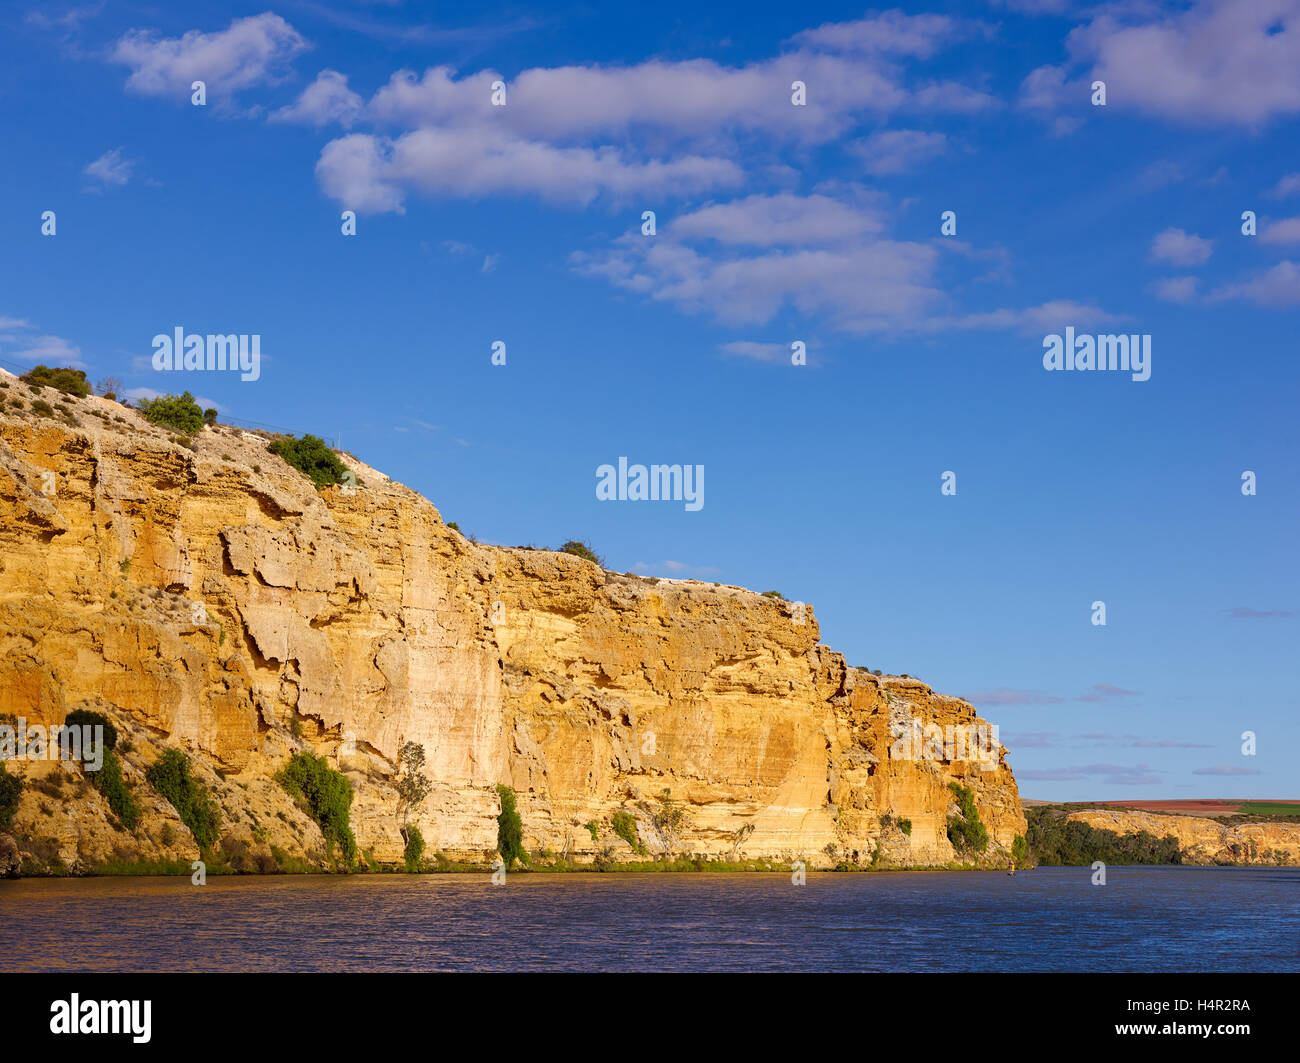 Bank of Murray River at Walker Flat on the lower reaches of the Murray darling Basin, South Australia. - Stock Image